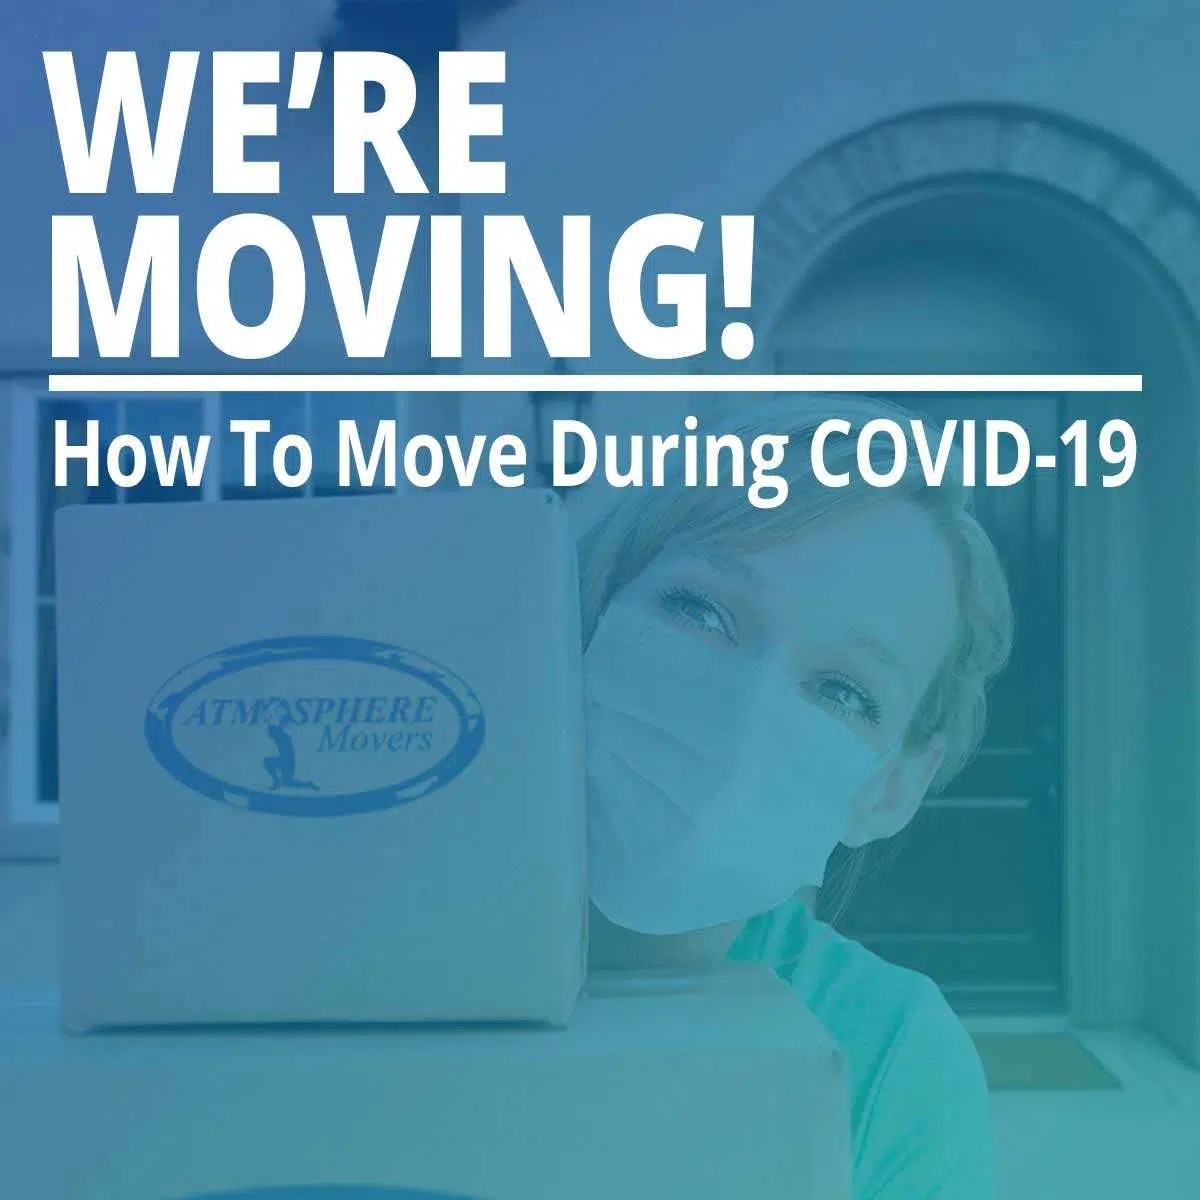 How To Move During COVID-19